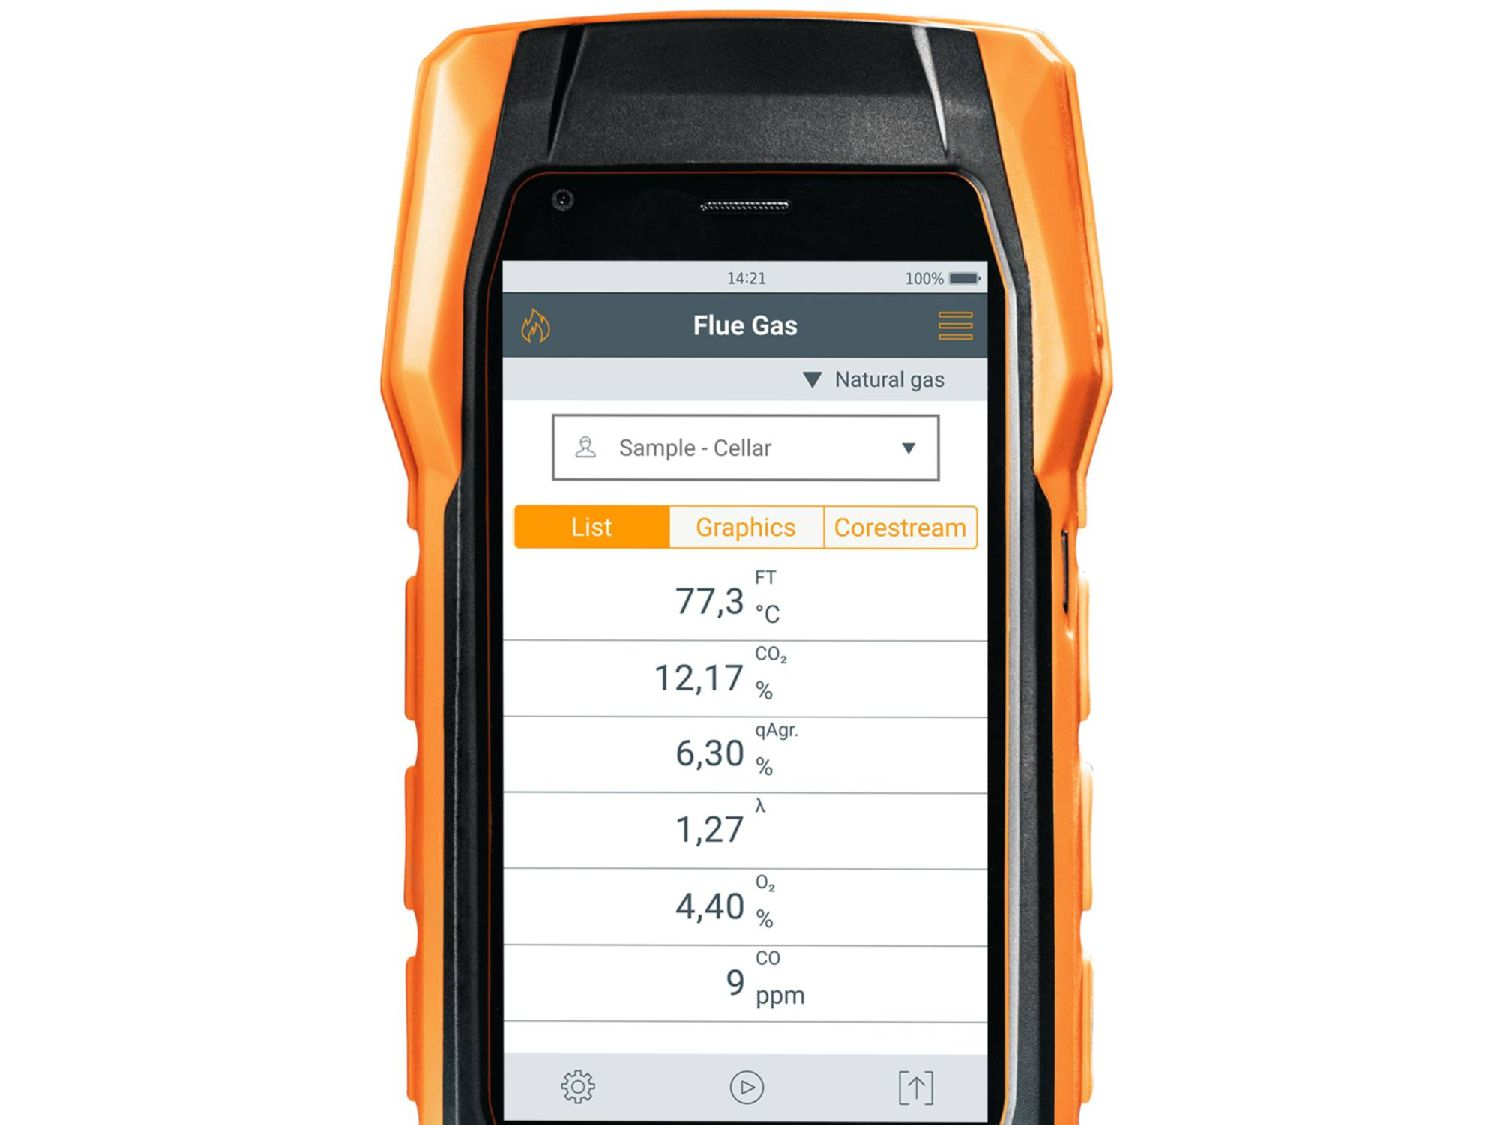 Flue gas measurement with the testo 300